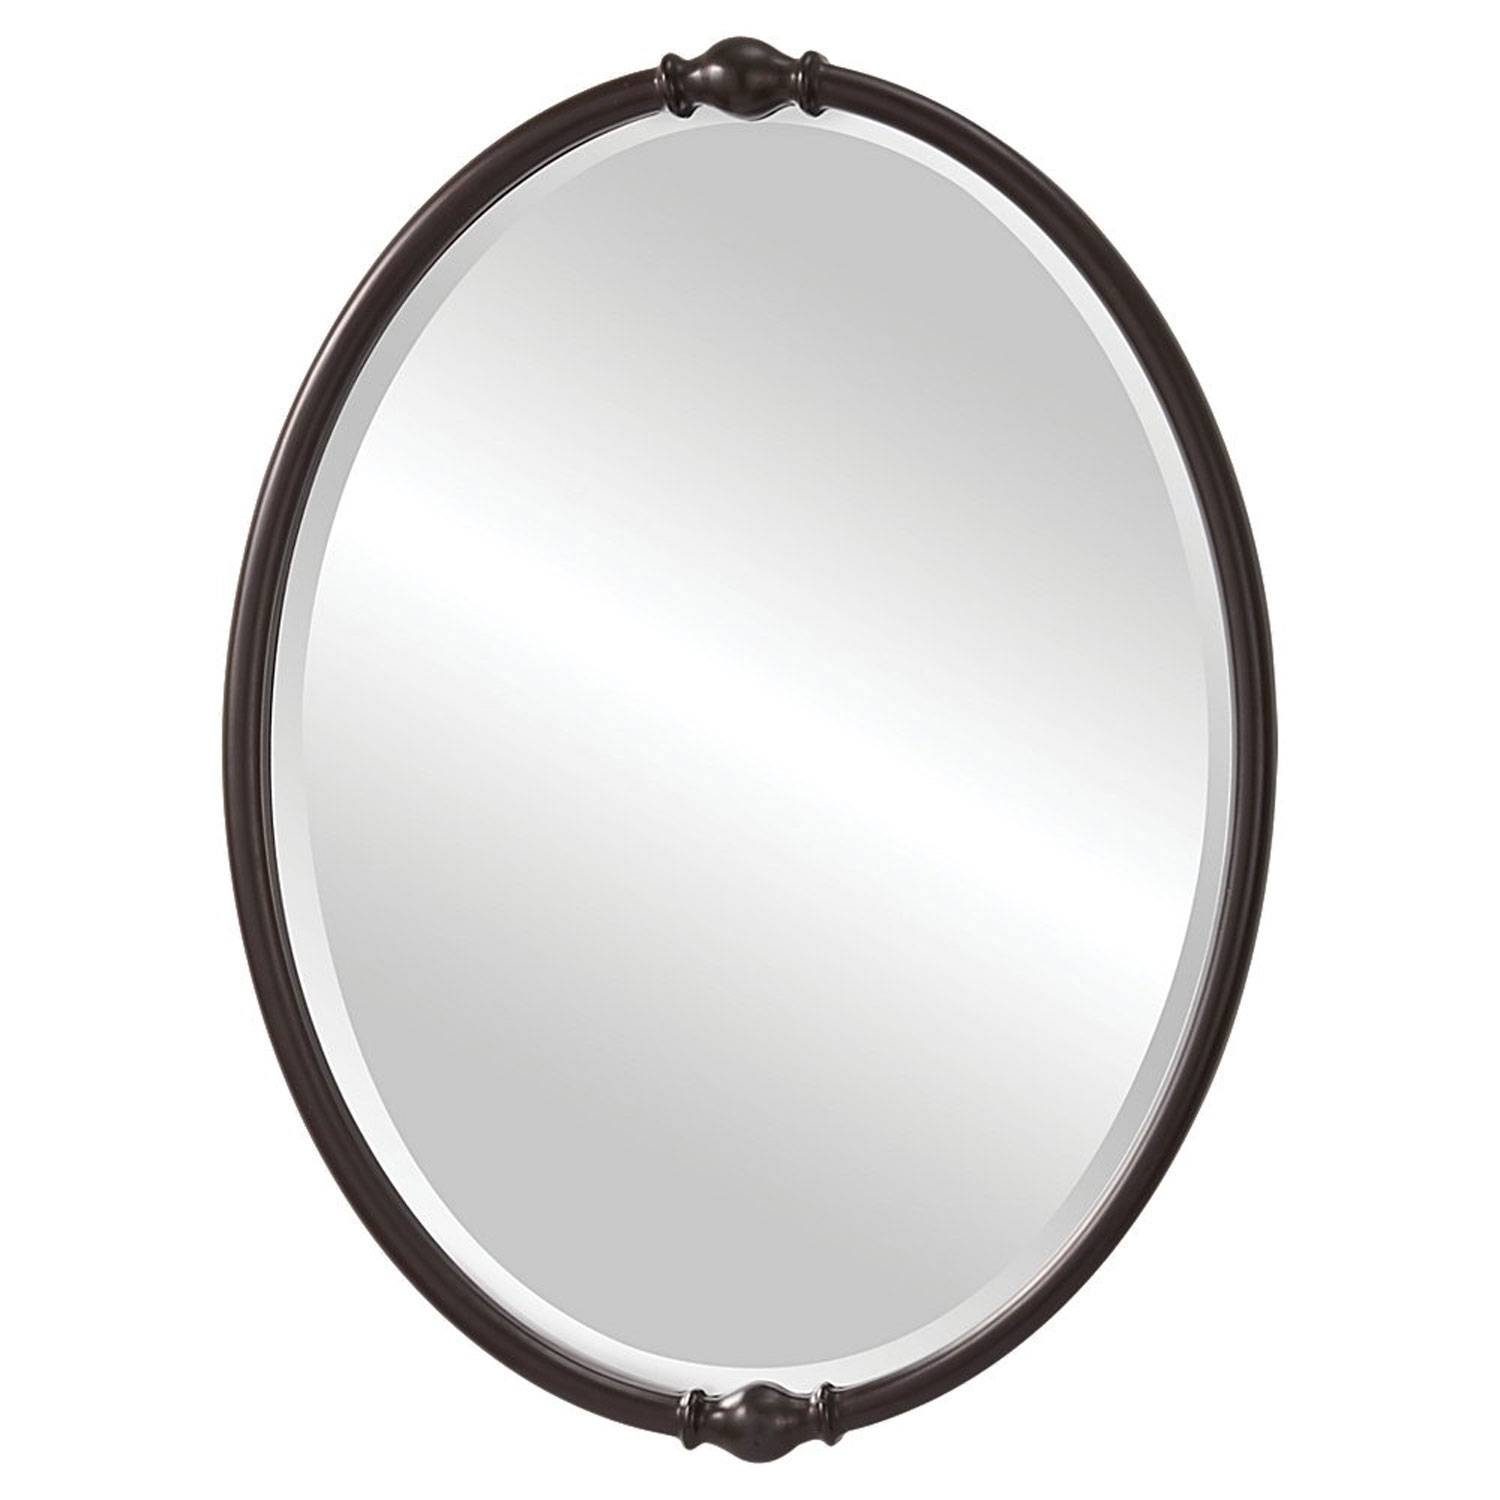 Oval Mirrors | Bellacor for Large Bronze Mirrors (Image 10 of 15)